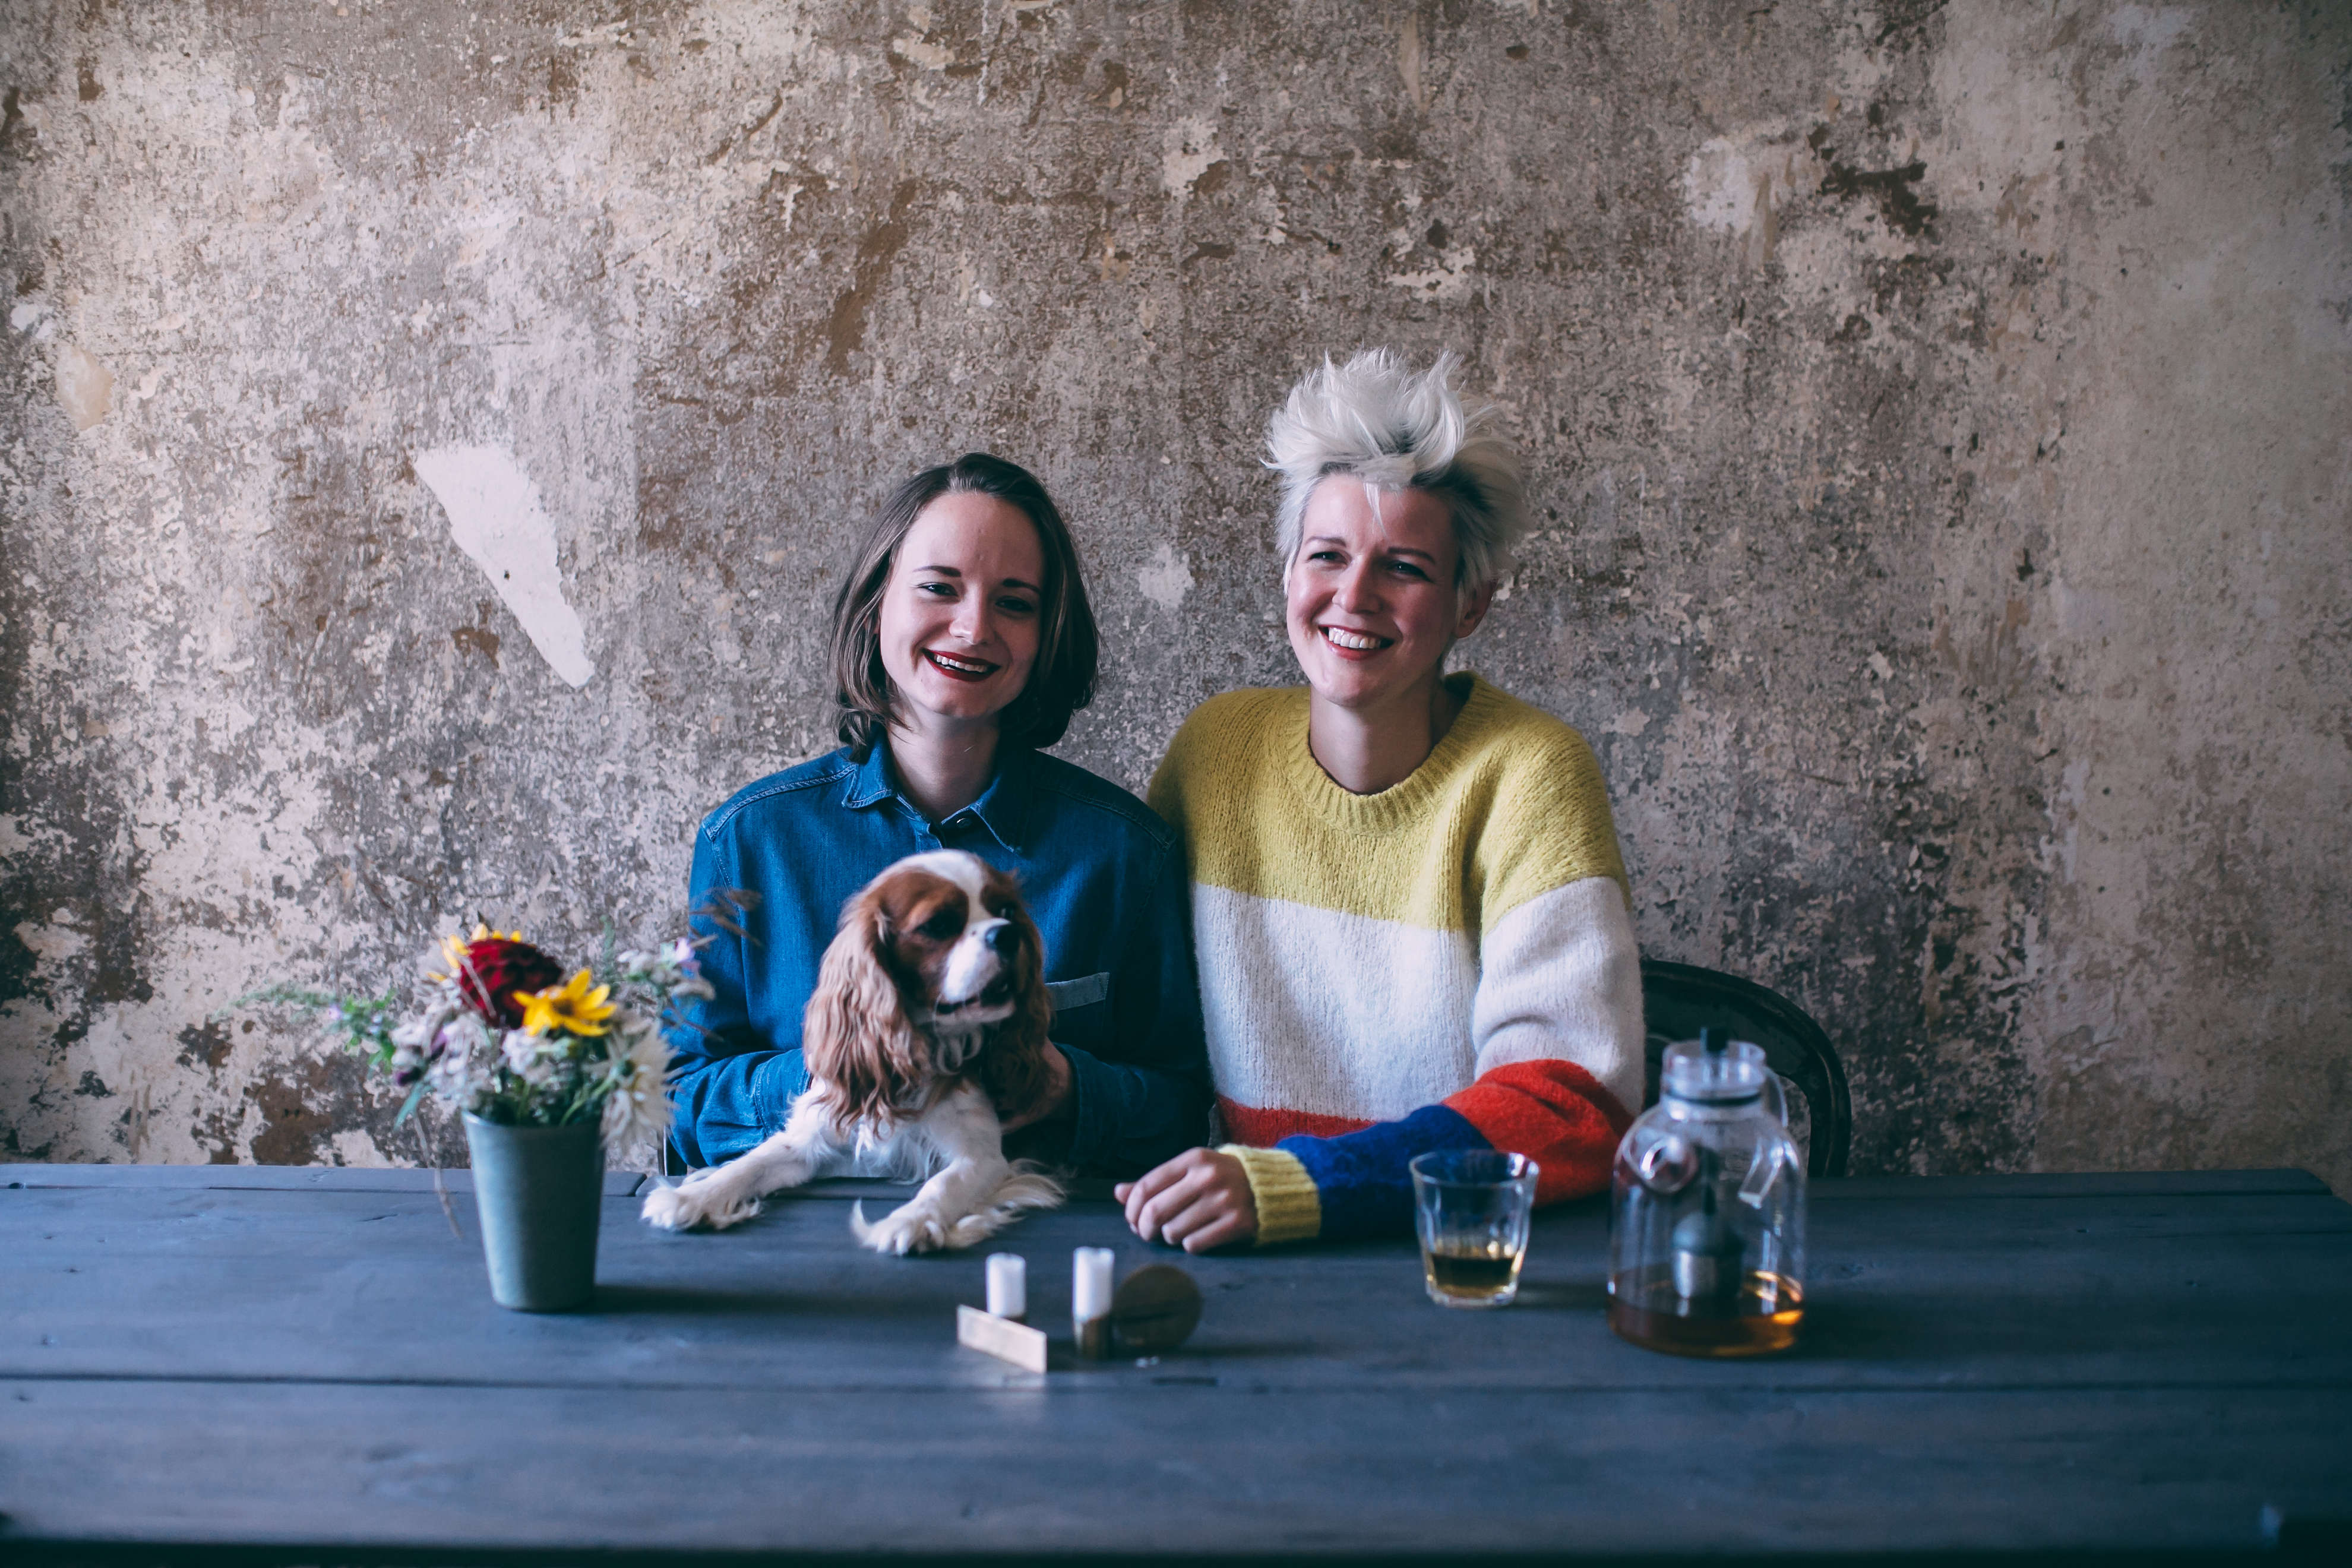 Laura Muthesius and Nora Eisermann, the creative couple behind Our Food Stories, photo by Ezgi Polat | Remodelista